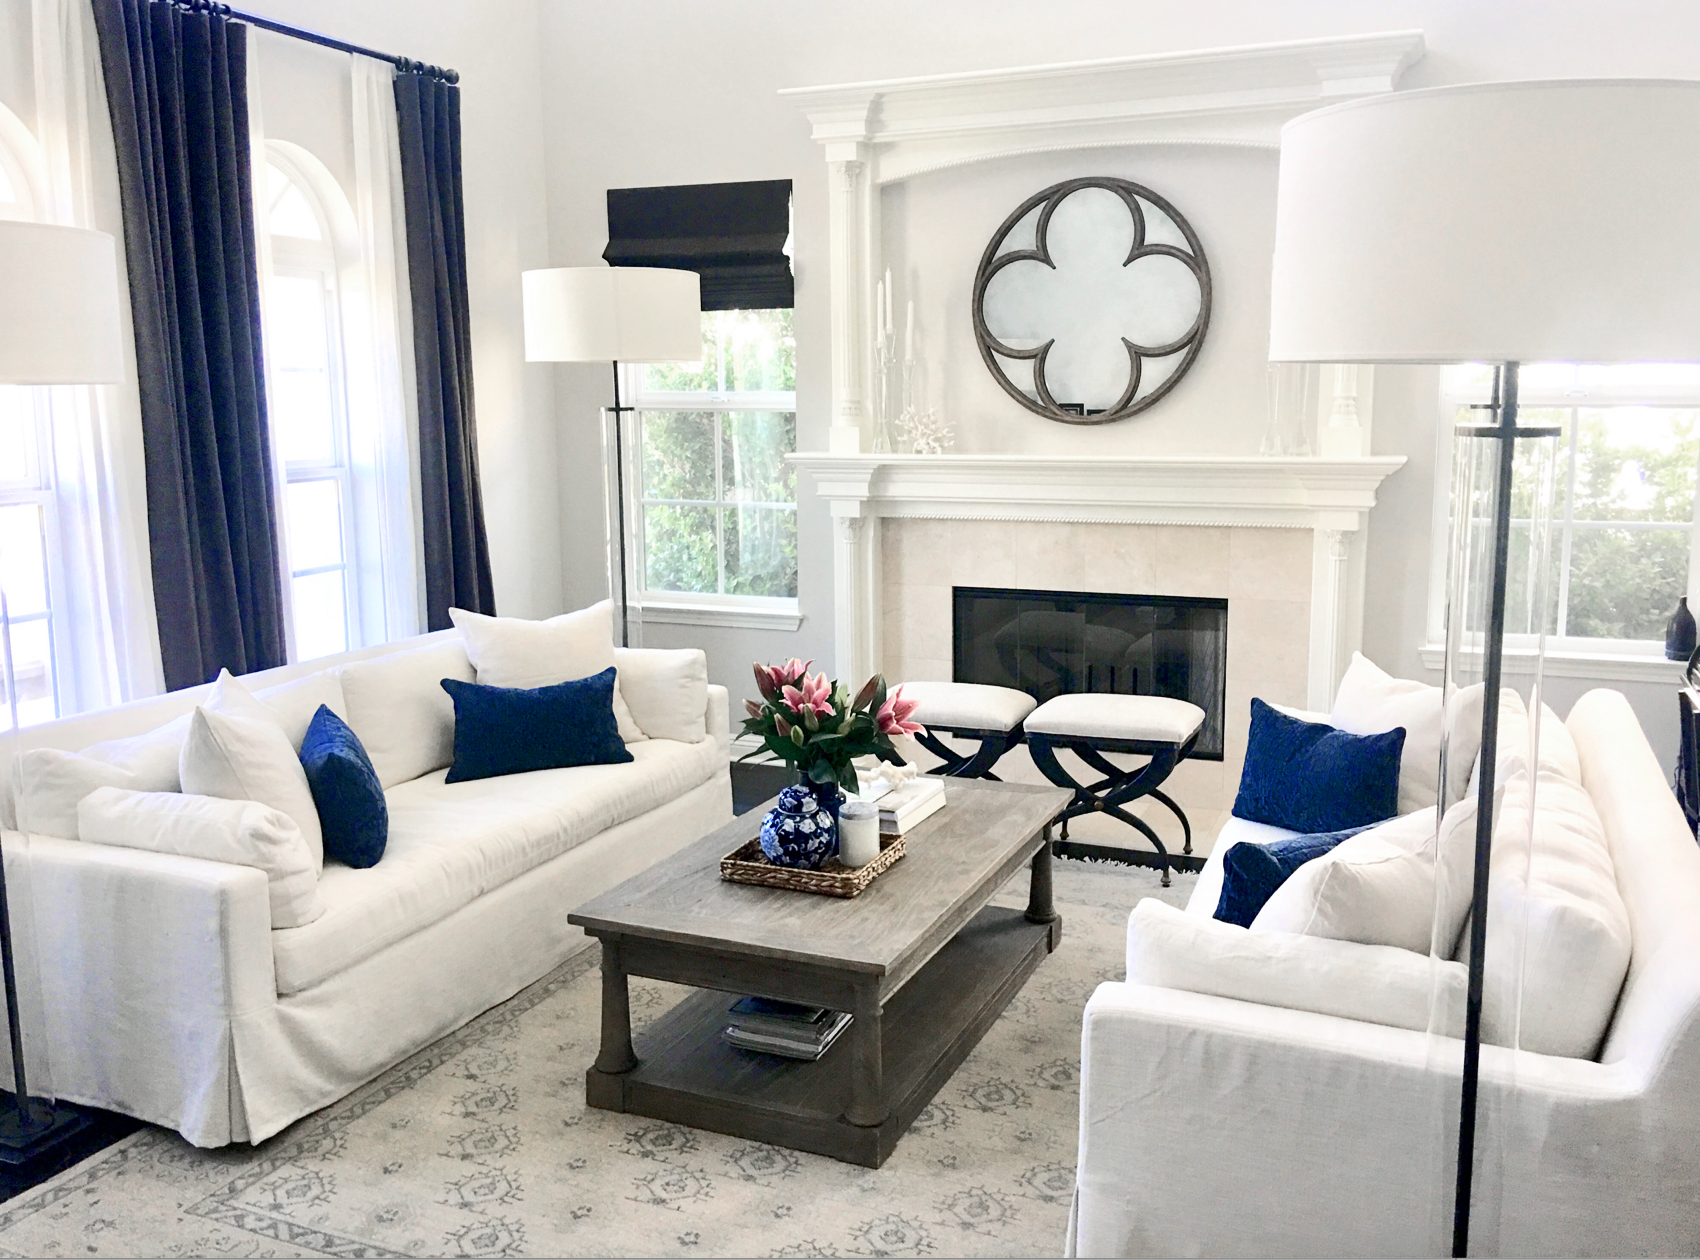 Elegant all white and blue transitional style living room ...